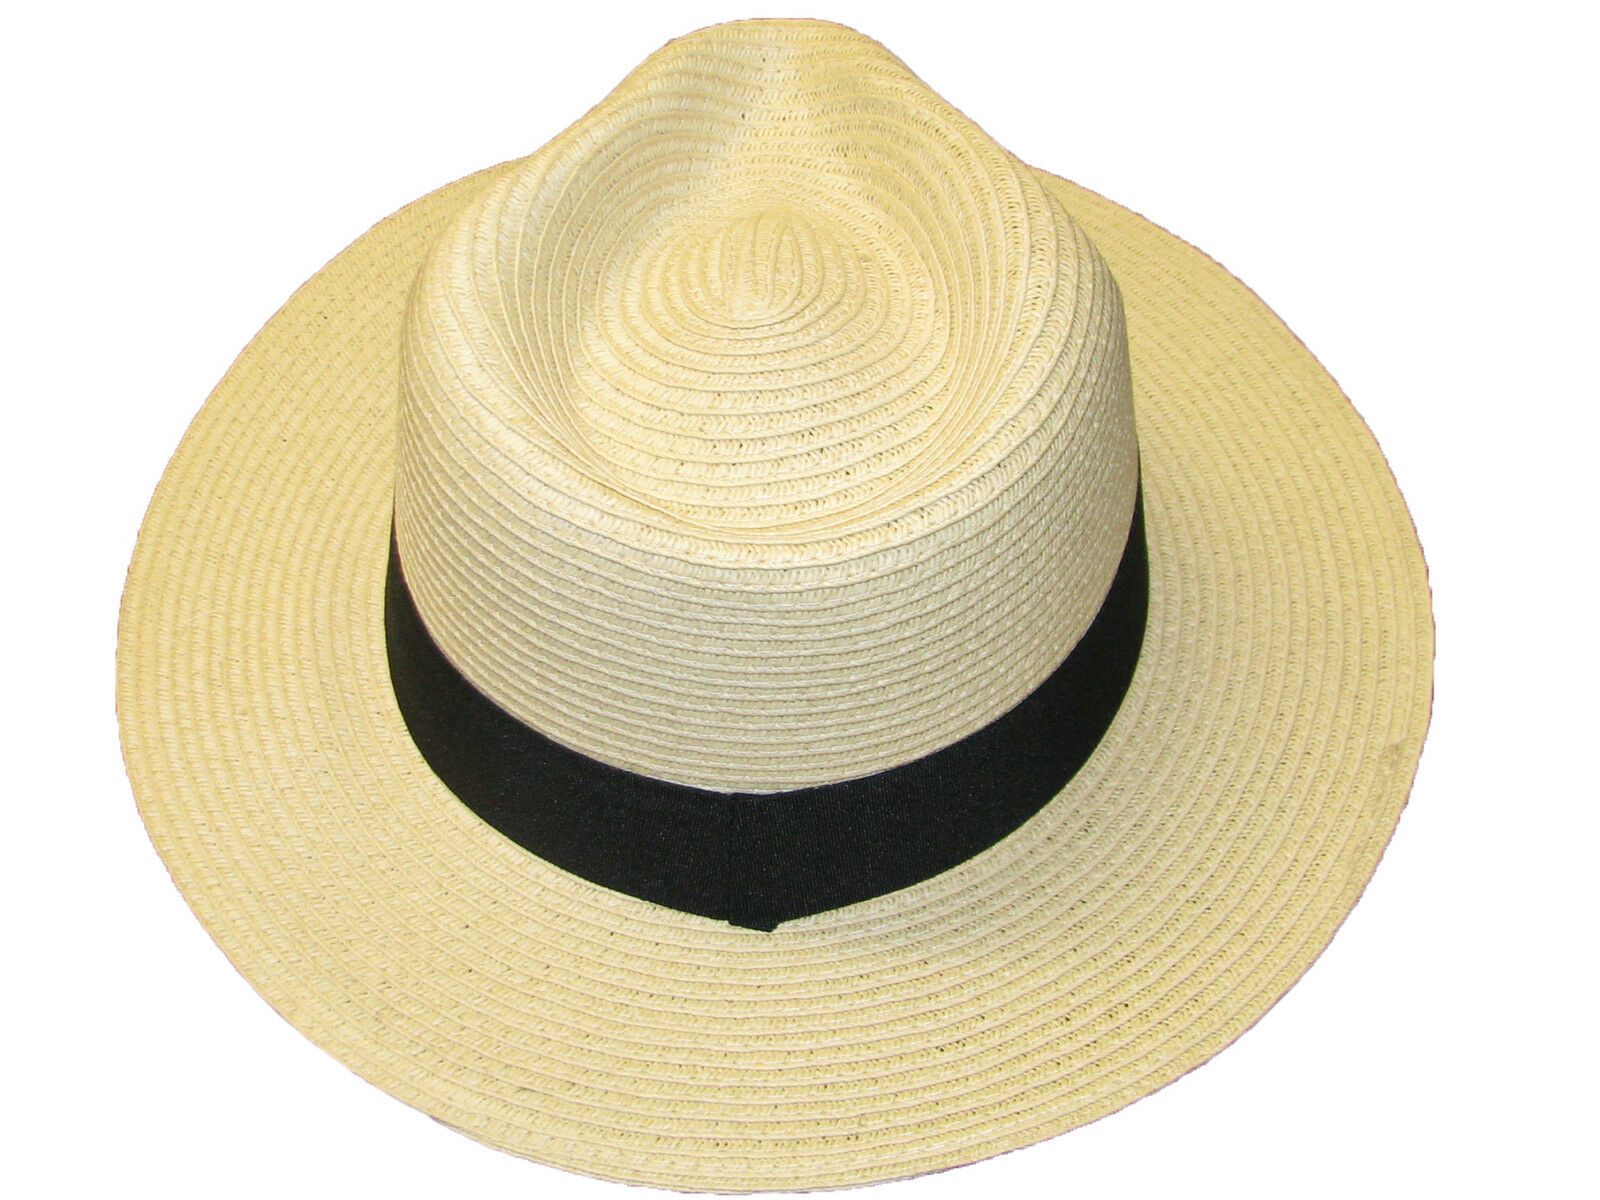 0484be22403 Details about Mens Ladies Straw Fedora Panama Style Sun Hat Crushable  Summer Hat 3 Sizes